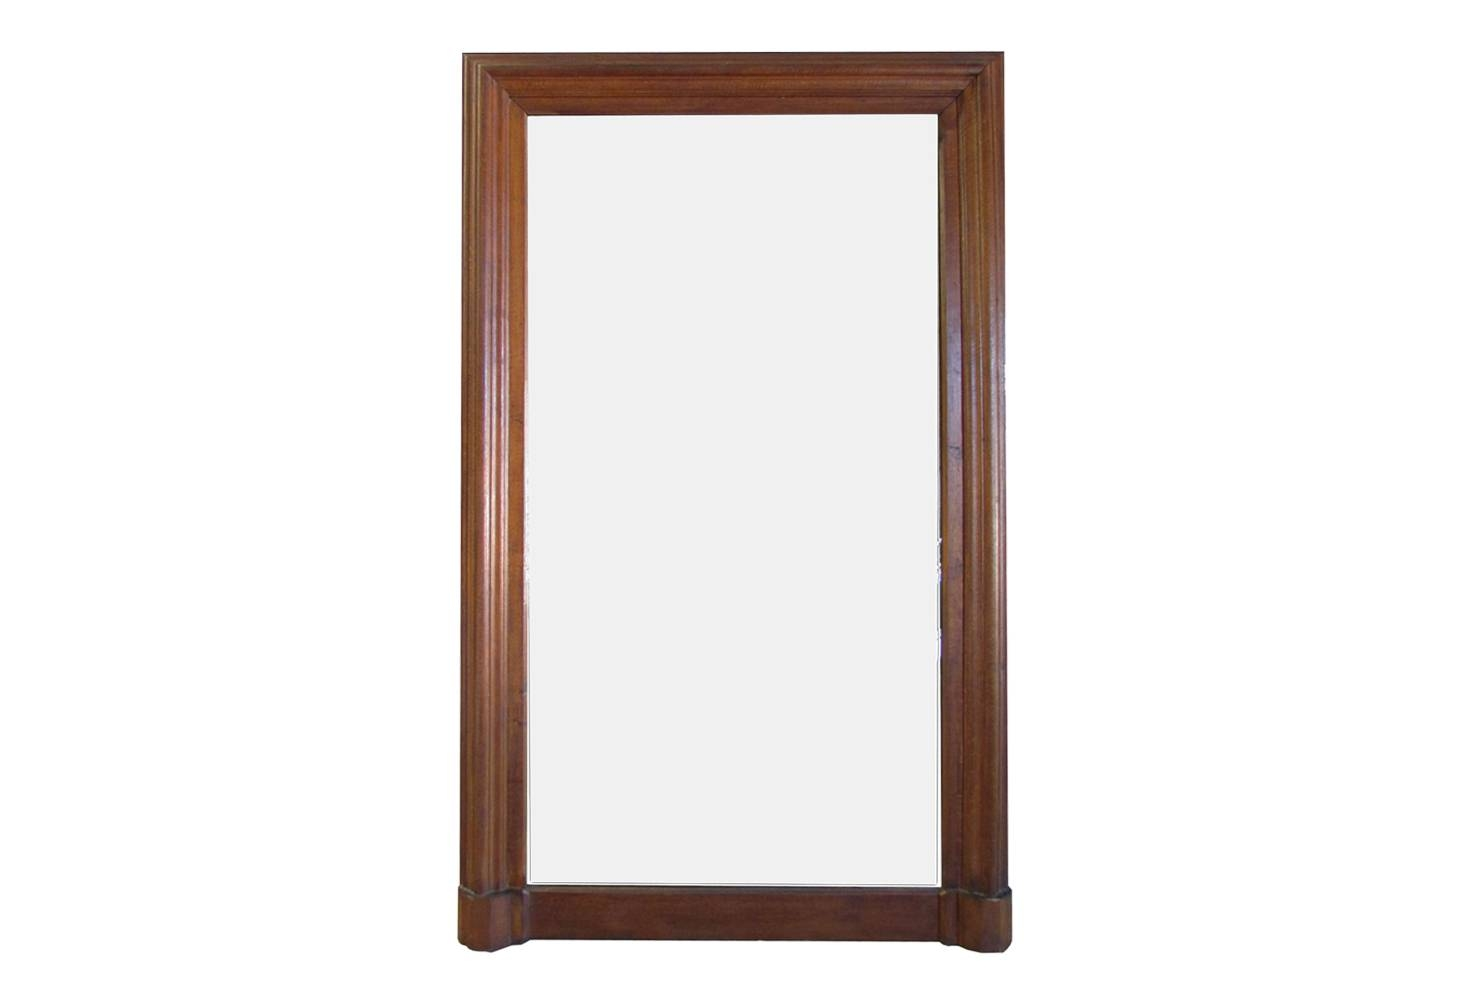 Antique French Oak Mirror | Omero Home In Antique Oak Mirrors (View 5 of 15)